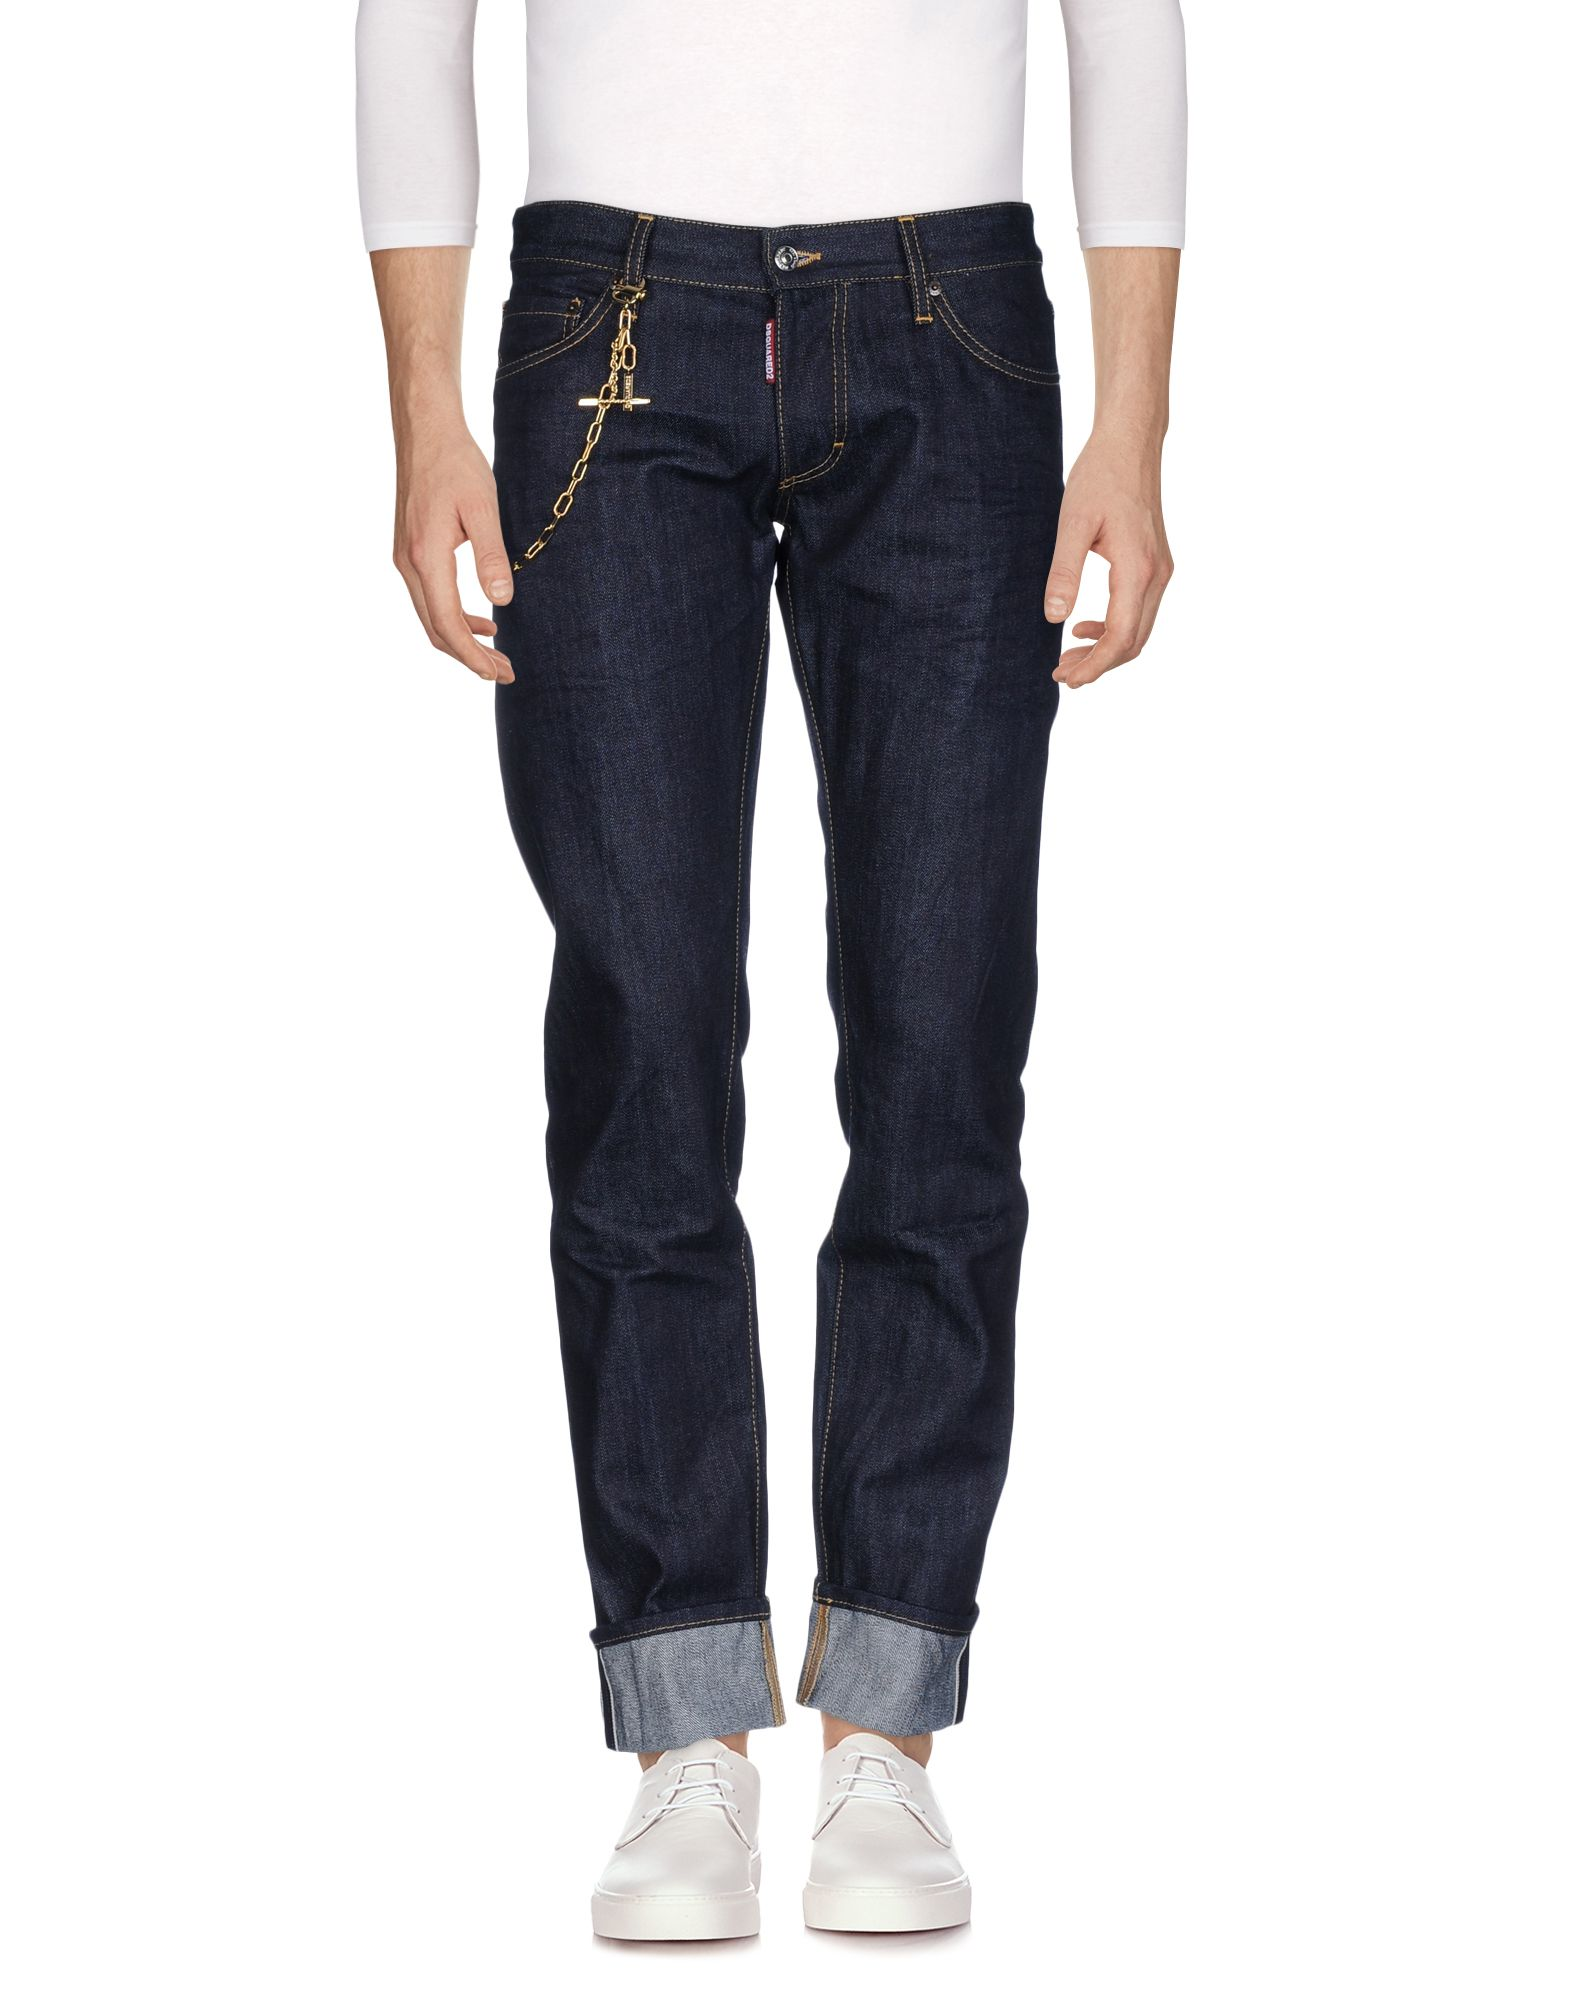 dsquared2 jeans shop at ebates. Black Bedroom Furniture Sets. Home Design Ideas